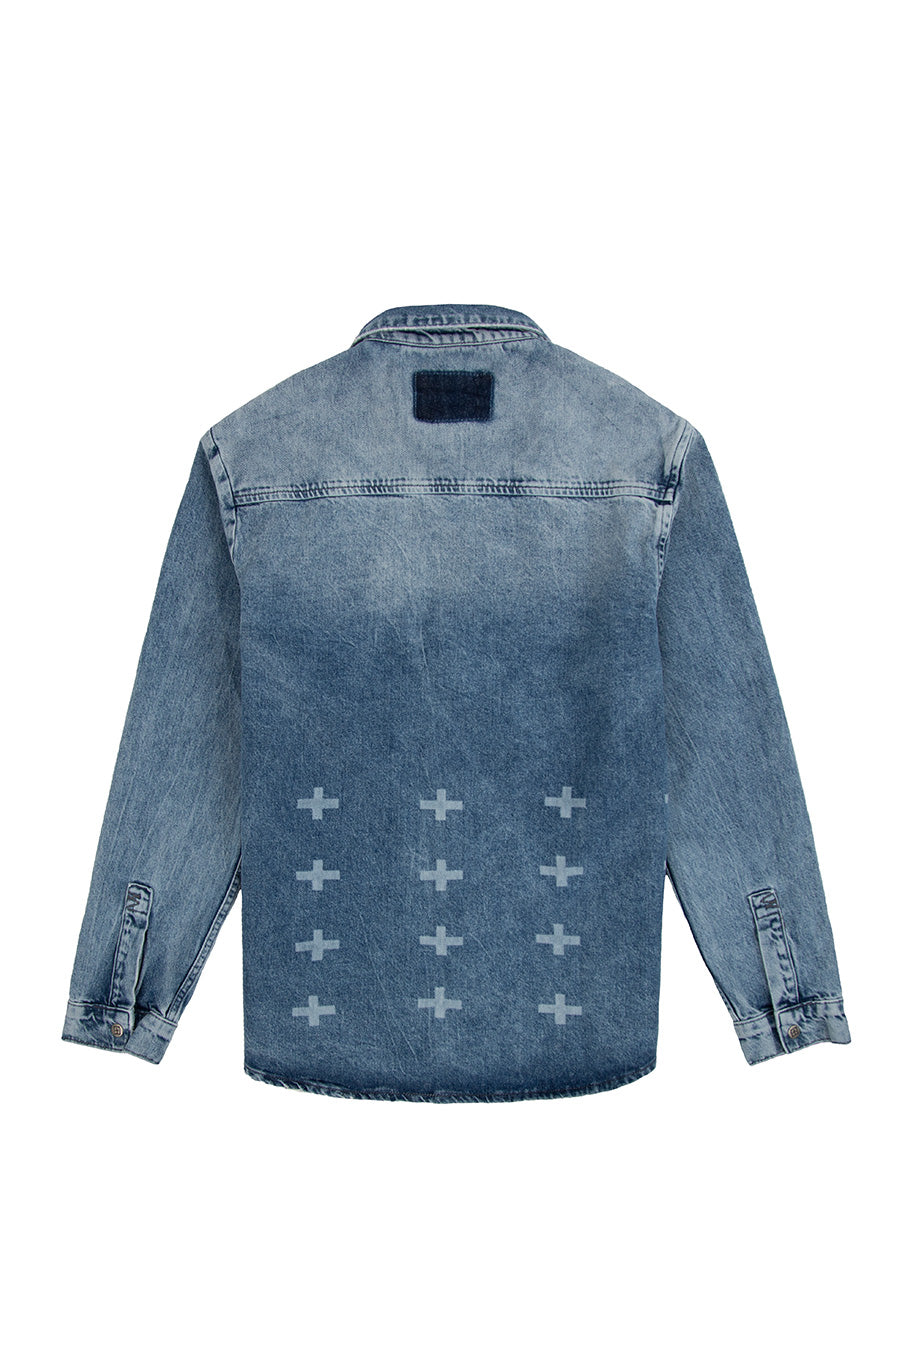 Ksubi - Blue Snakebite Vertigo Denim Shirt | 1032 SPACE